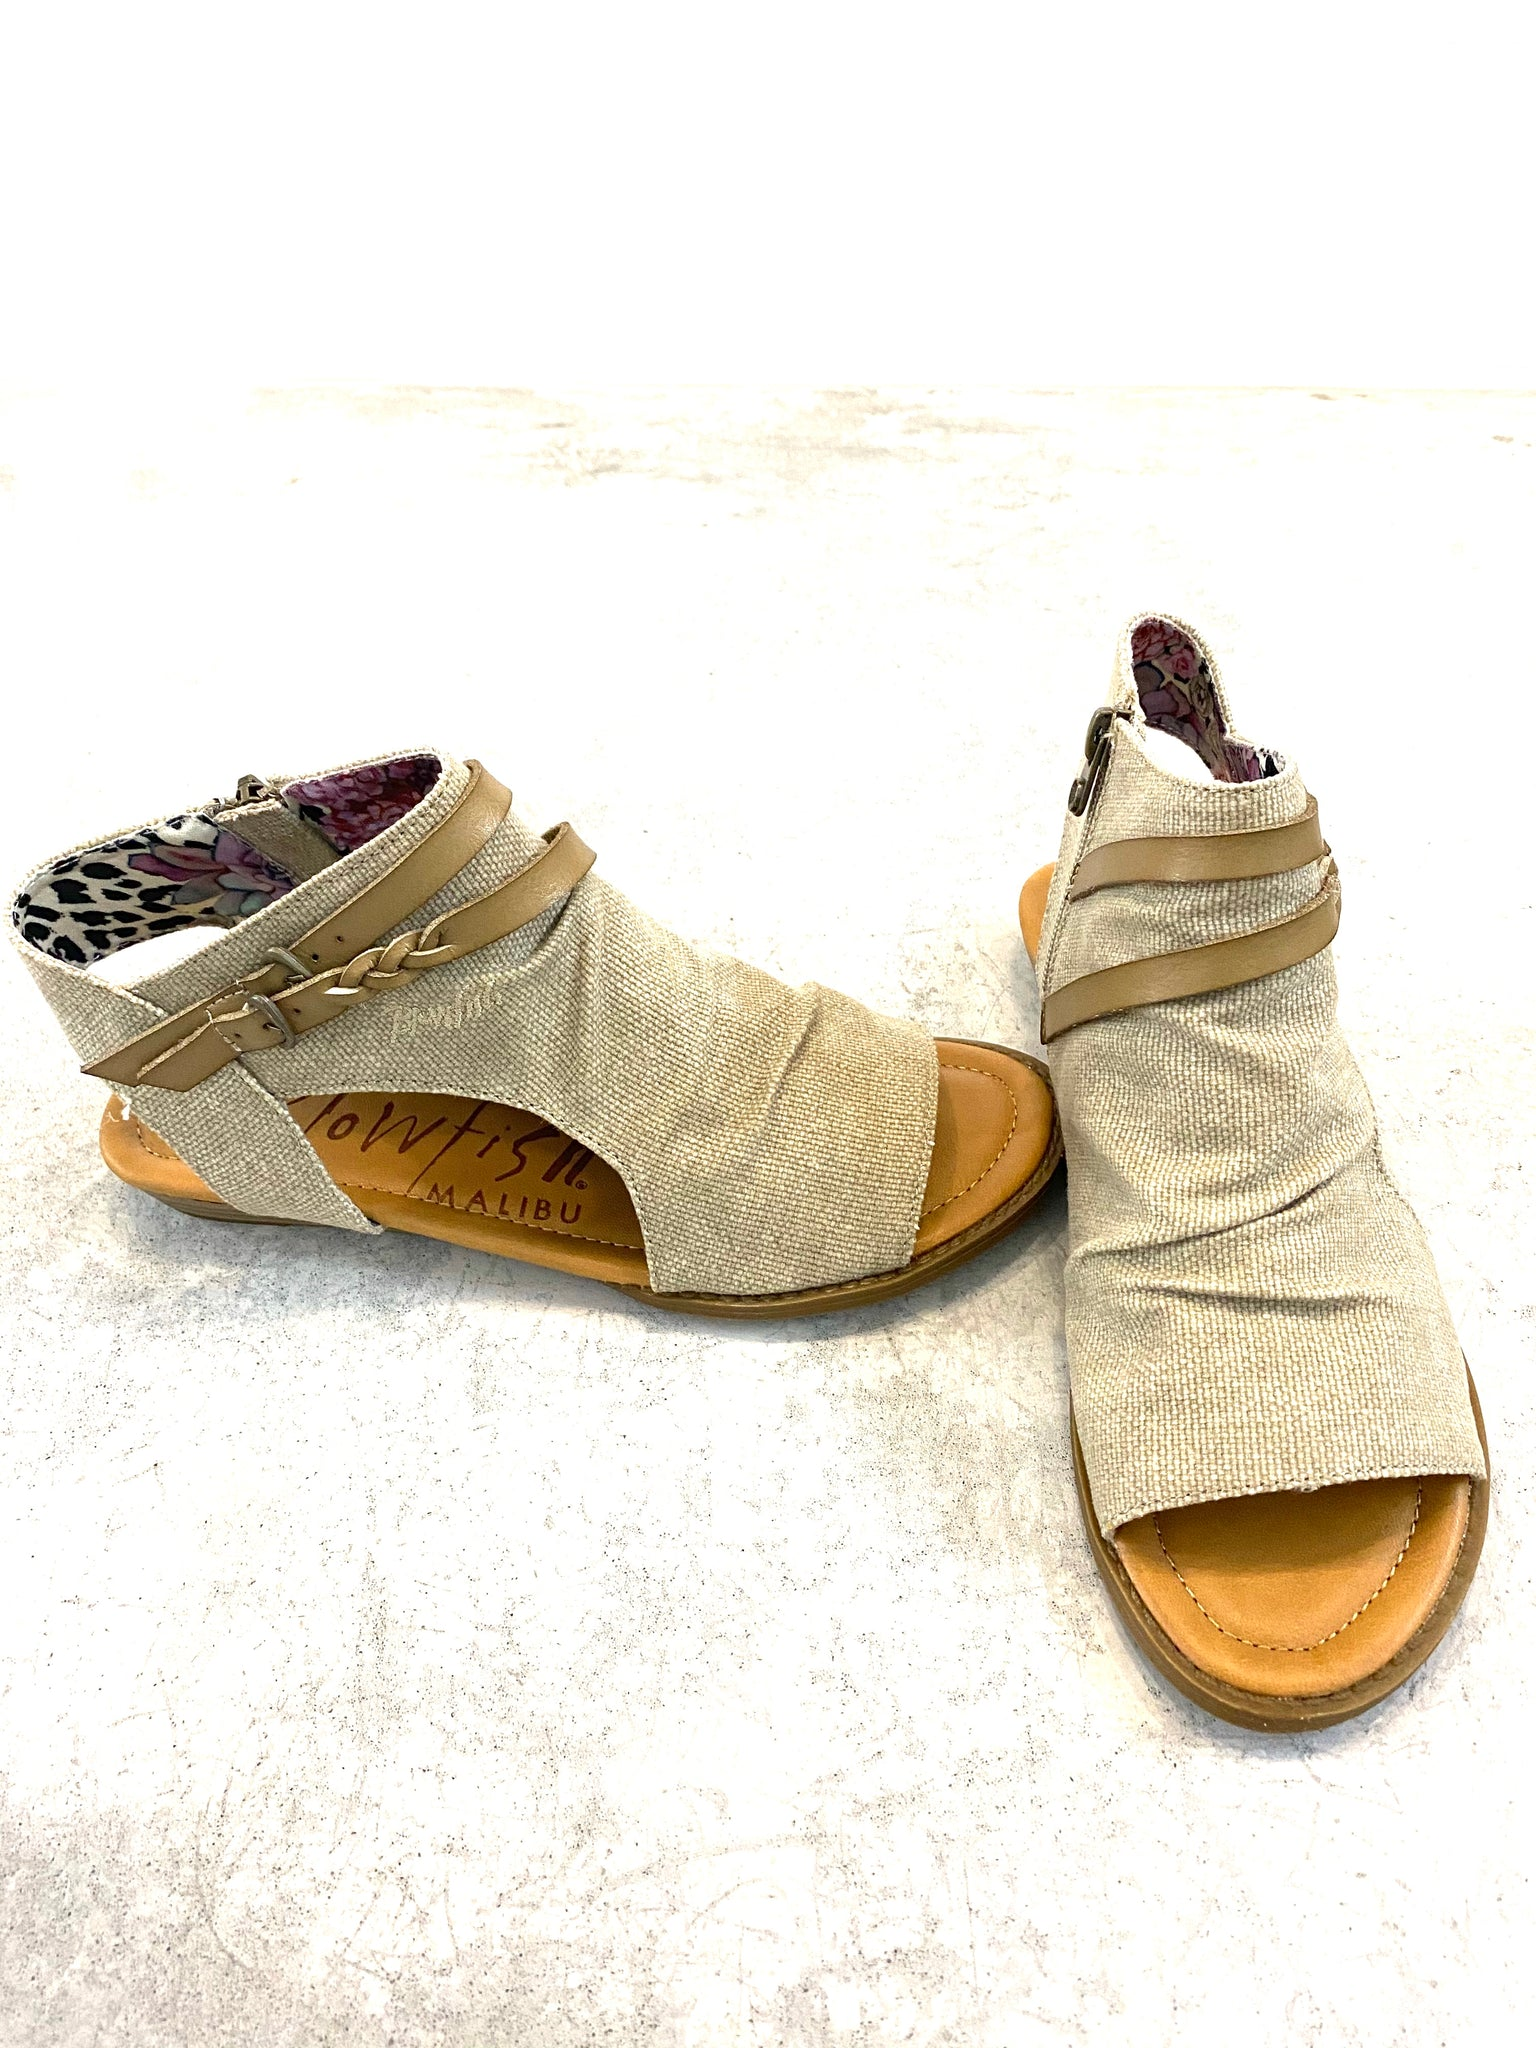 Blowfish Canvas Sandals